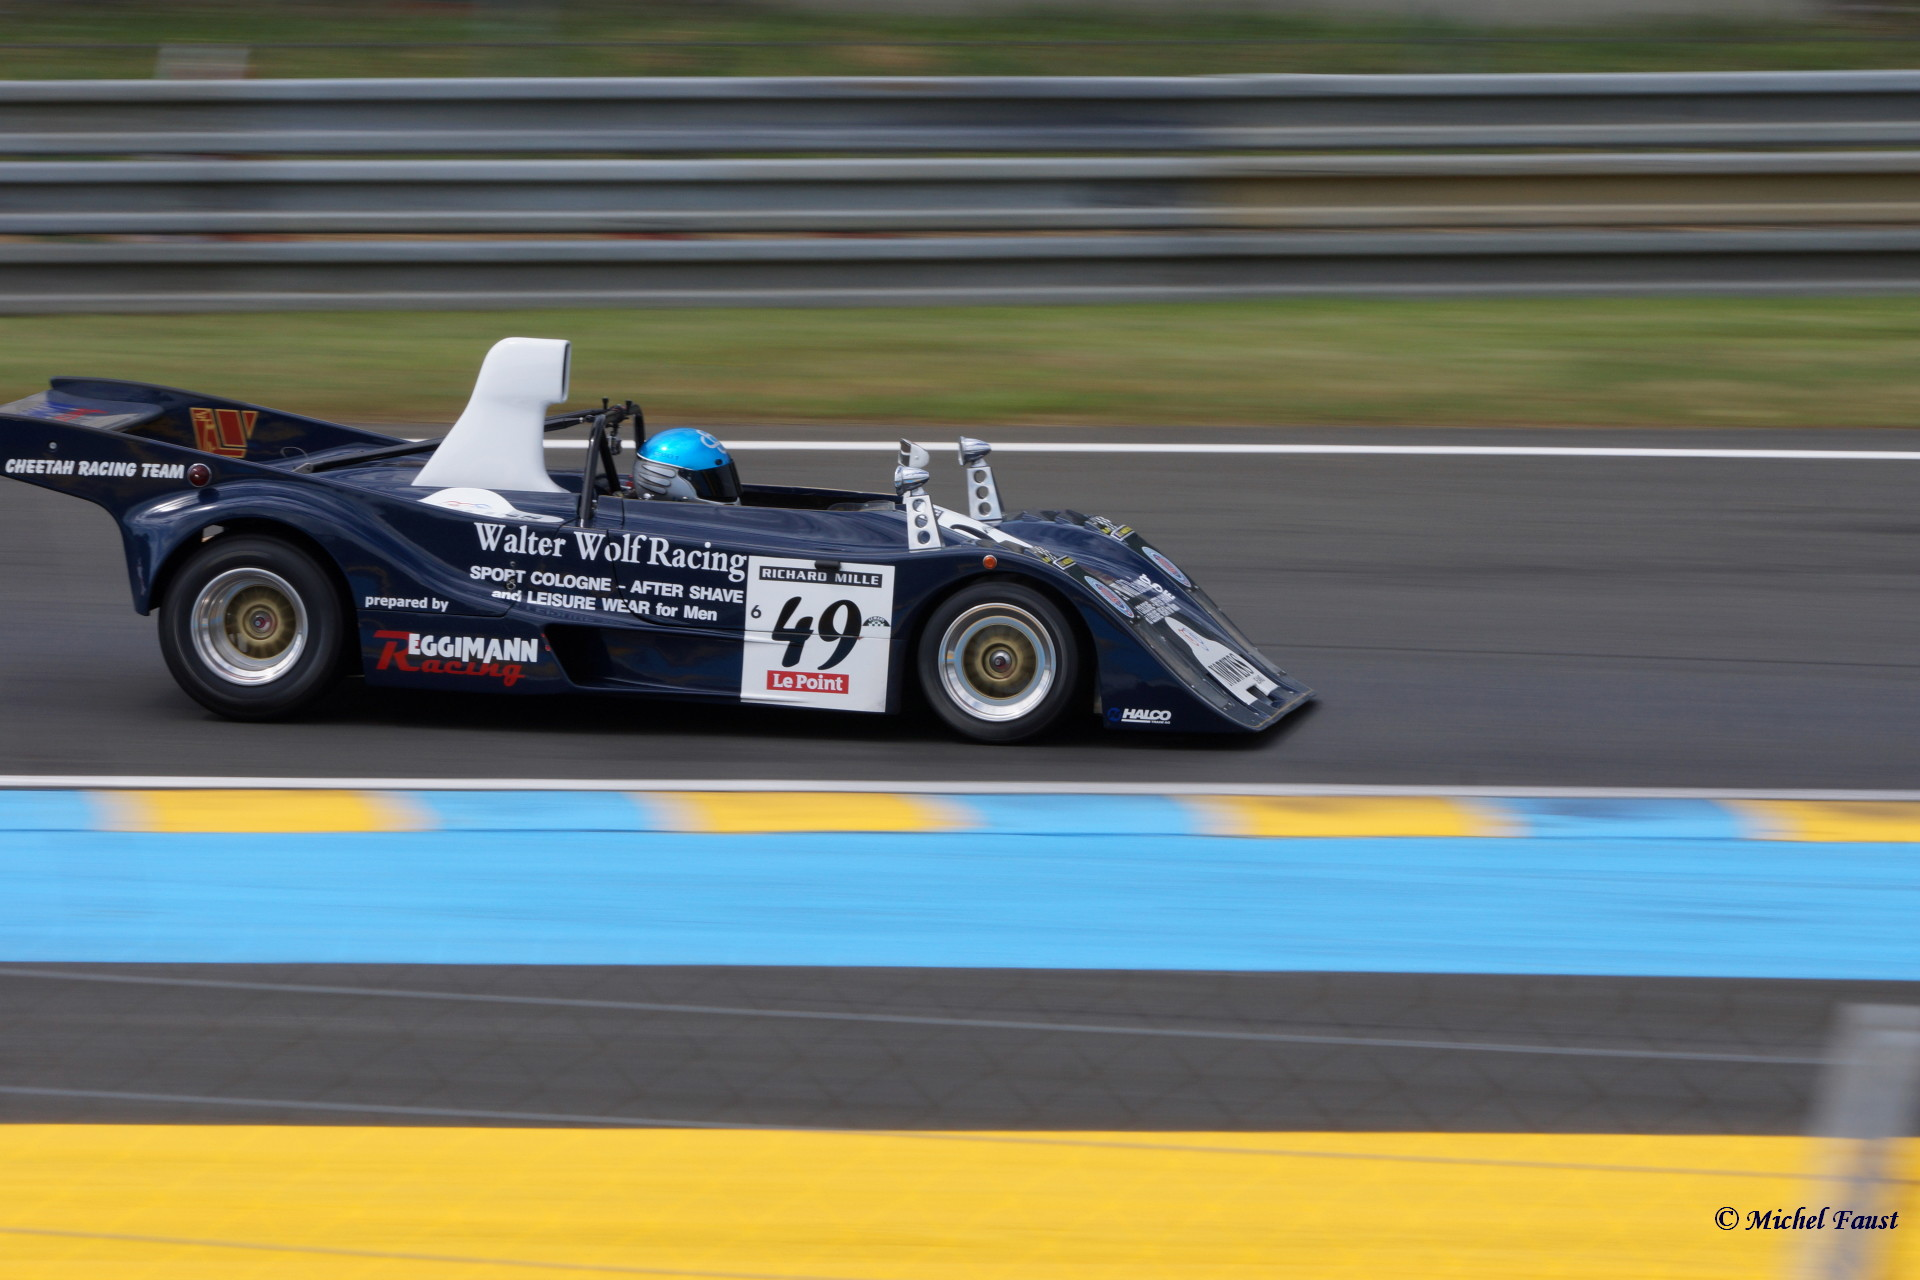 Racing Fans / Walter Wolf Racing Cheetah G 601 Le Mans 1980 / Le Mans Classic 2014